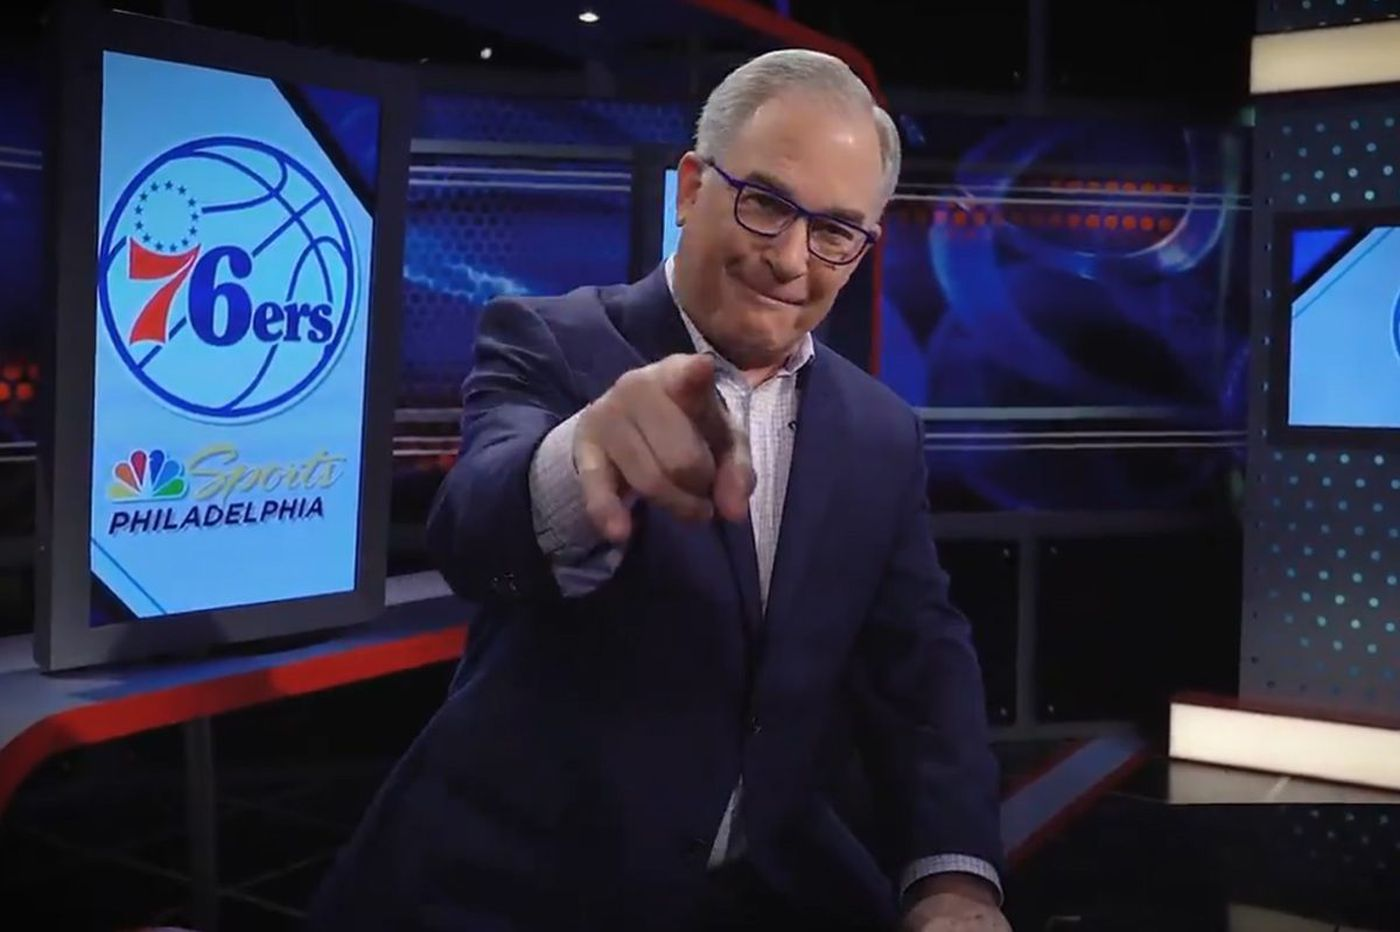 Michael Barkann gets new role at NBC Sports Philadelphia as Sixers draw huge ratings